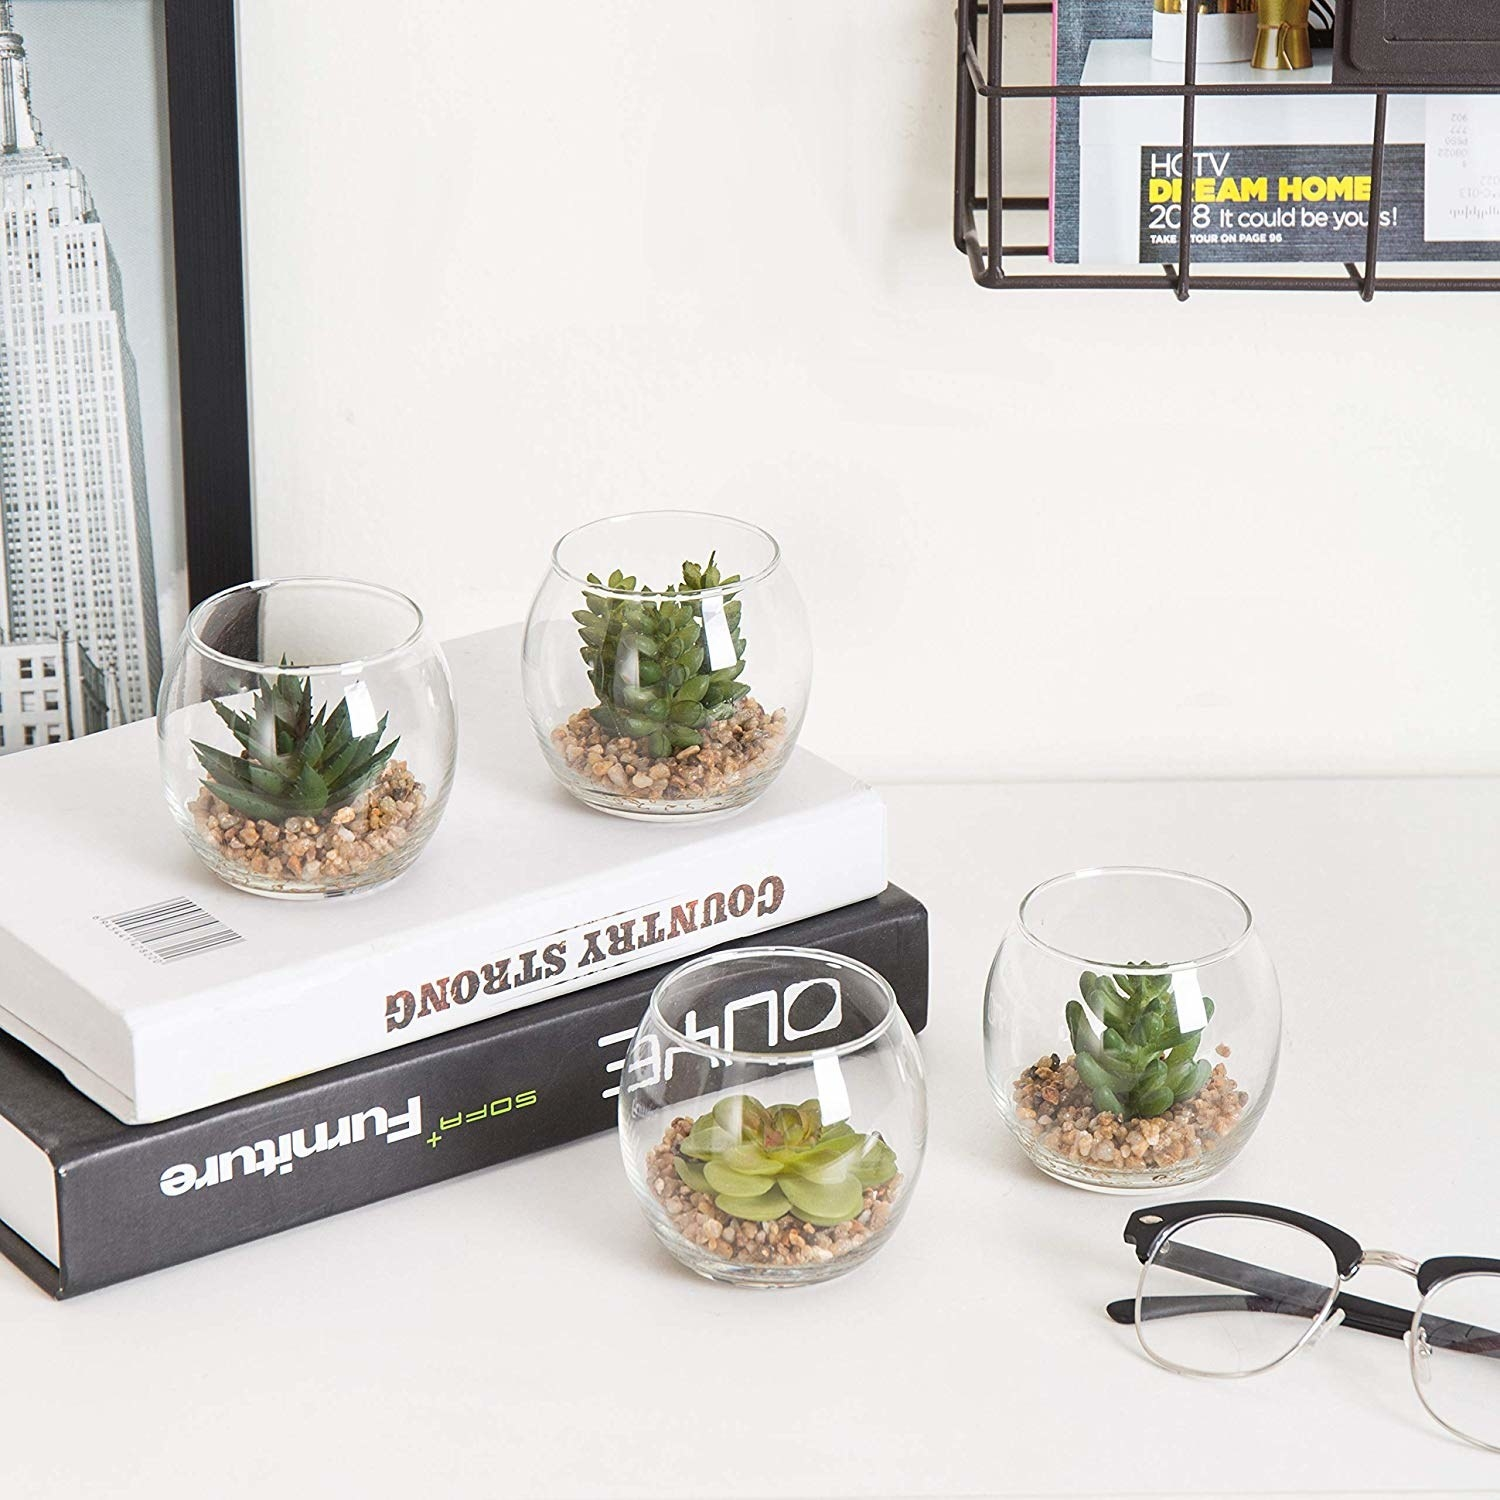 Four small succulents in transparent dome glasses and rocks at the bottom